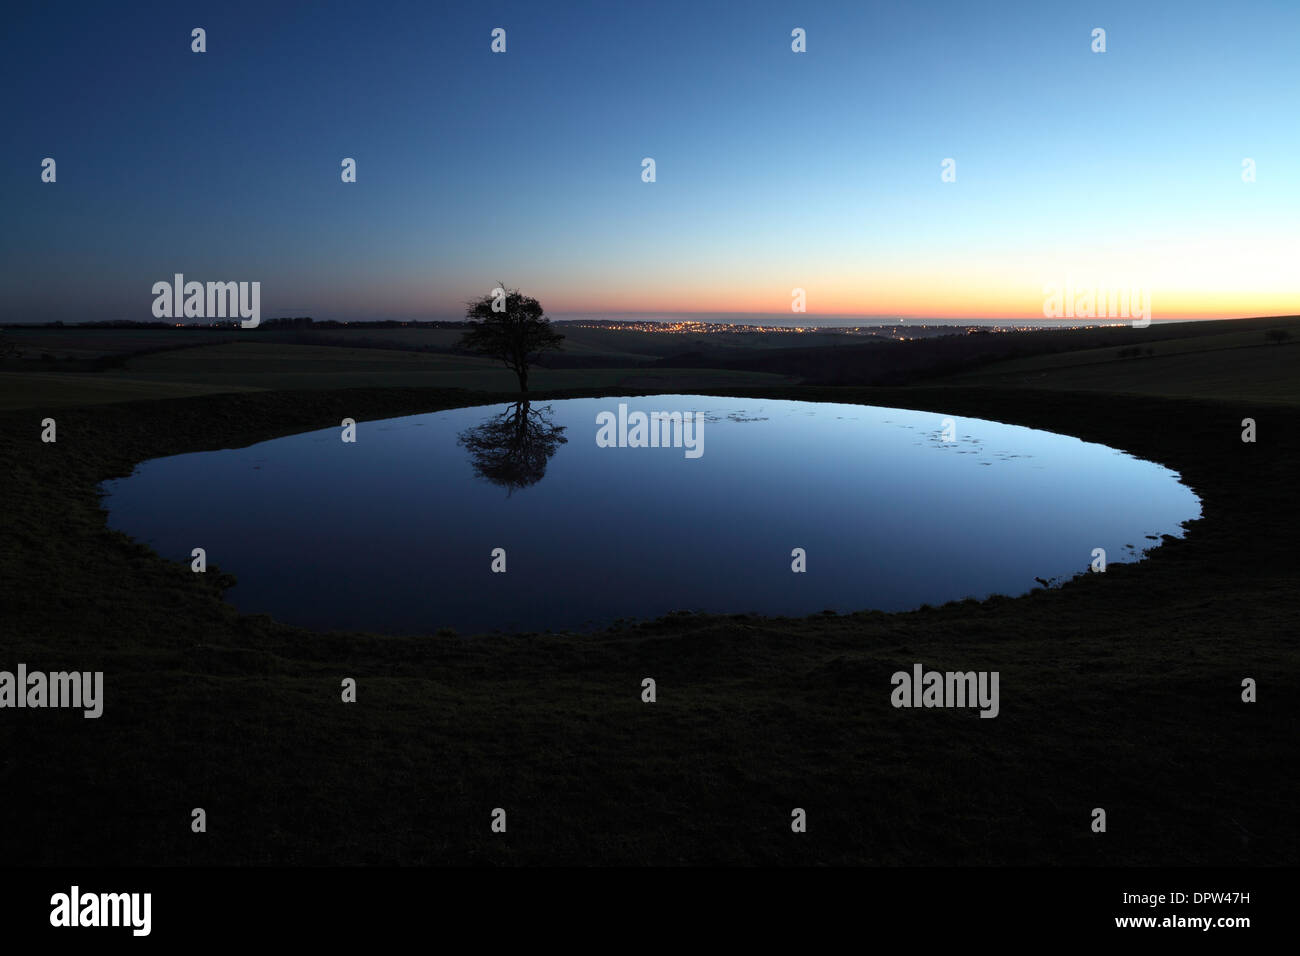 Dew pond on the South Downs at dusk. The sea and the lights of Brighton are just visible in the background. - Stock Image